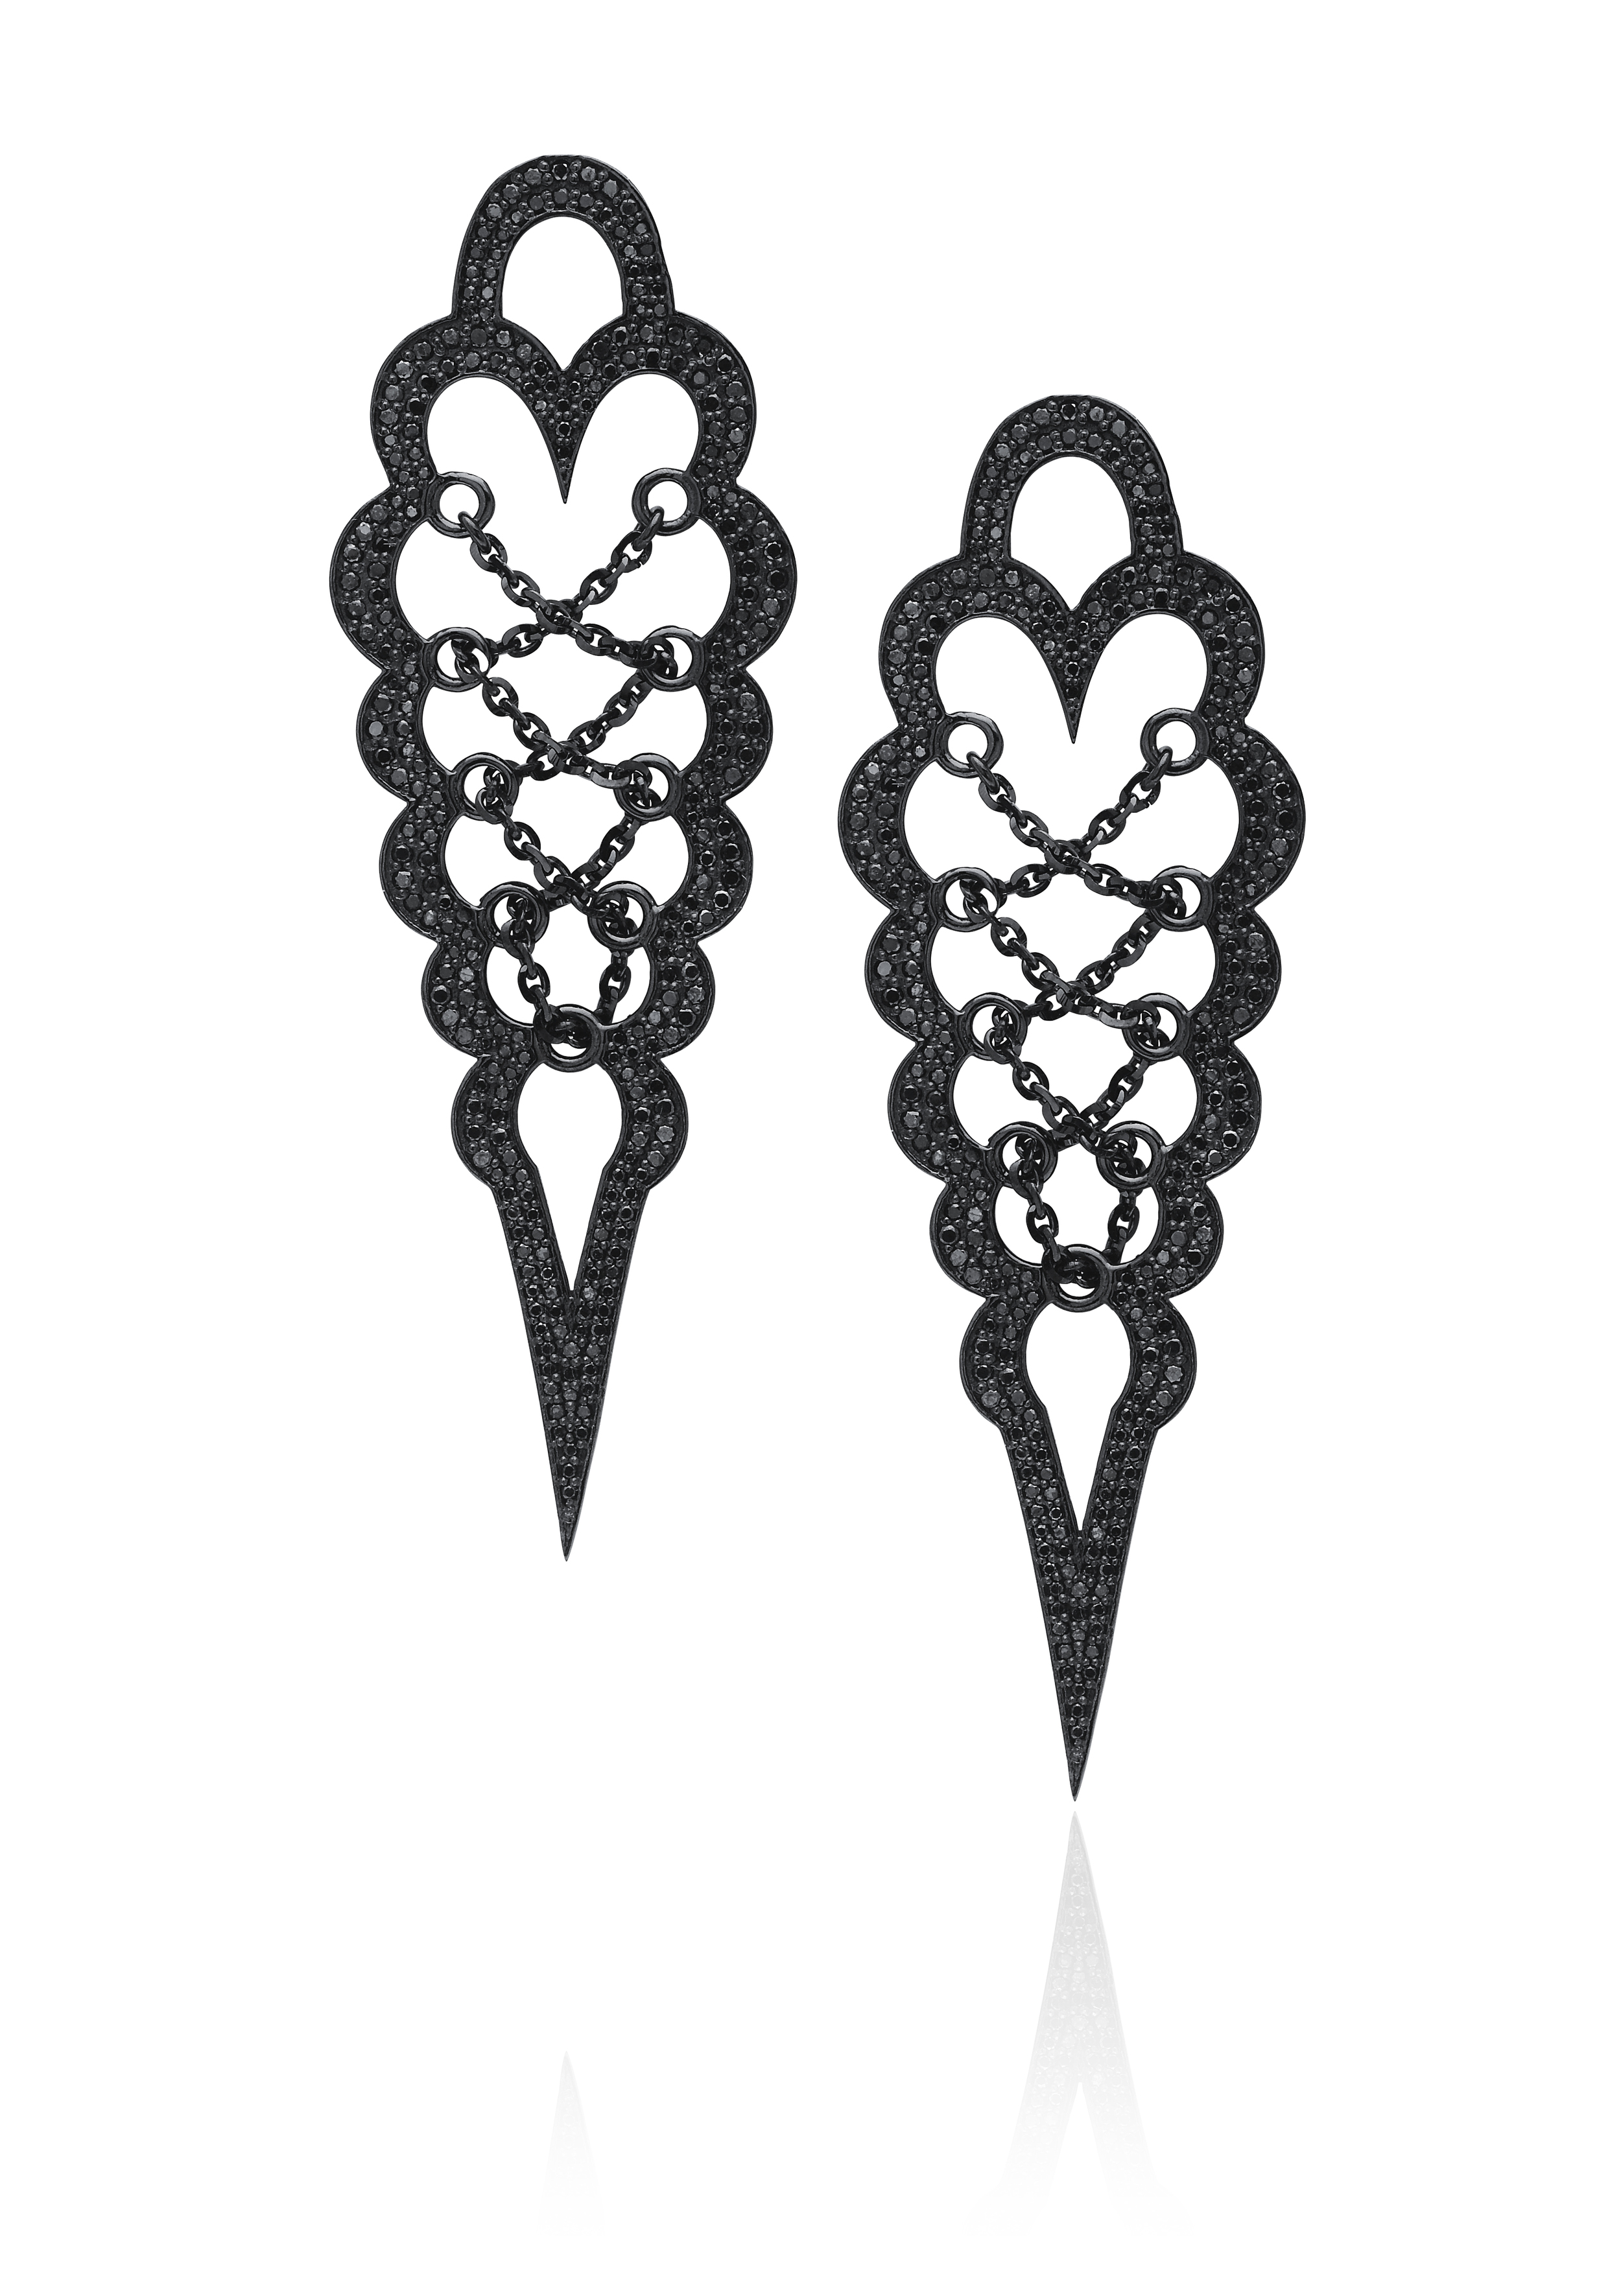 """Brand new black diamond corset earrings from the """"Entwined with You"""" collection."""